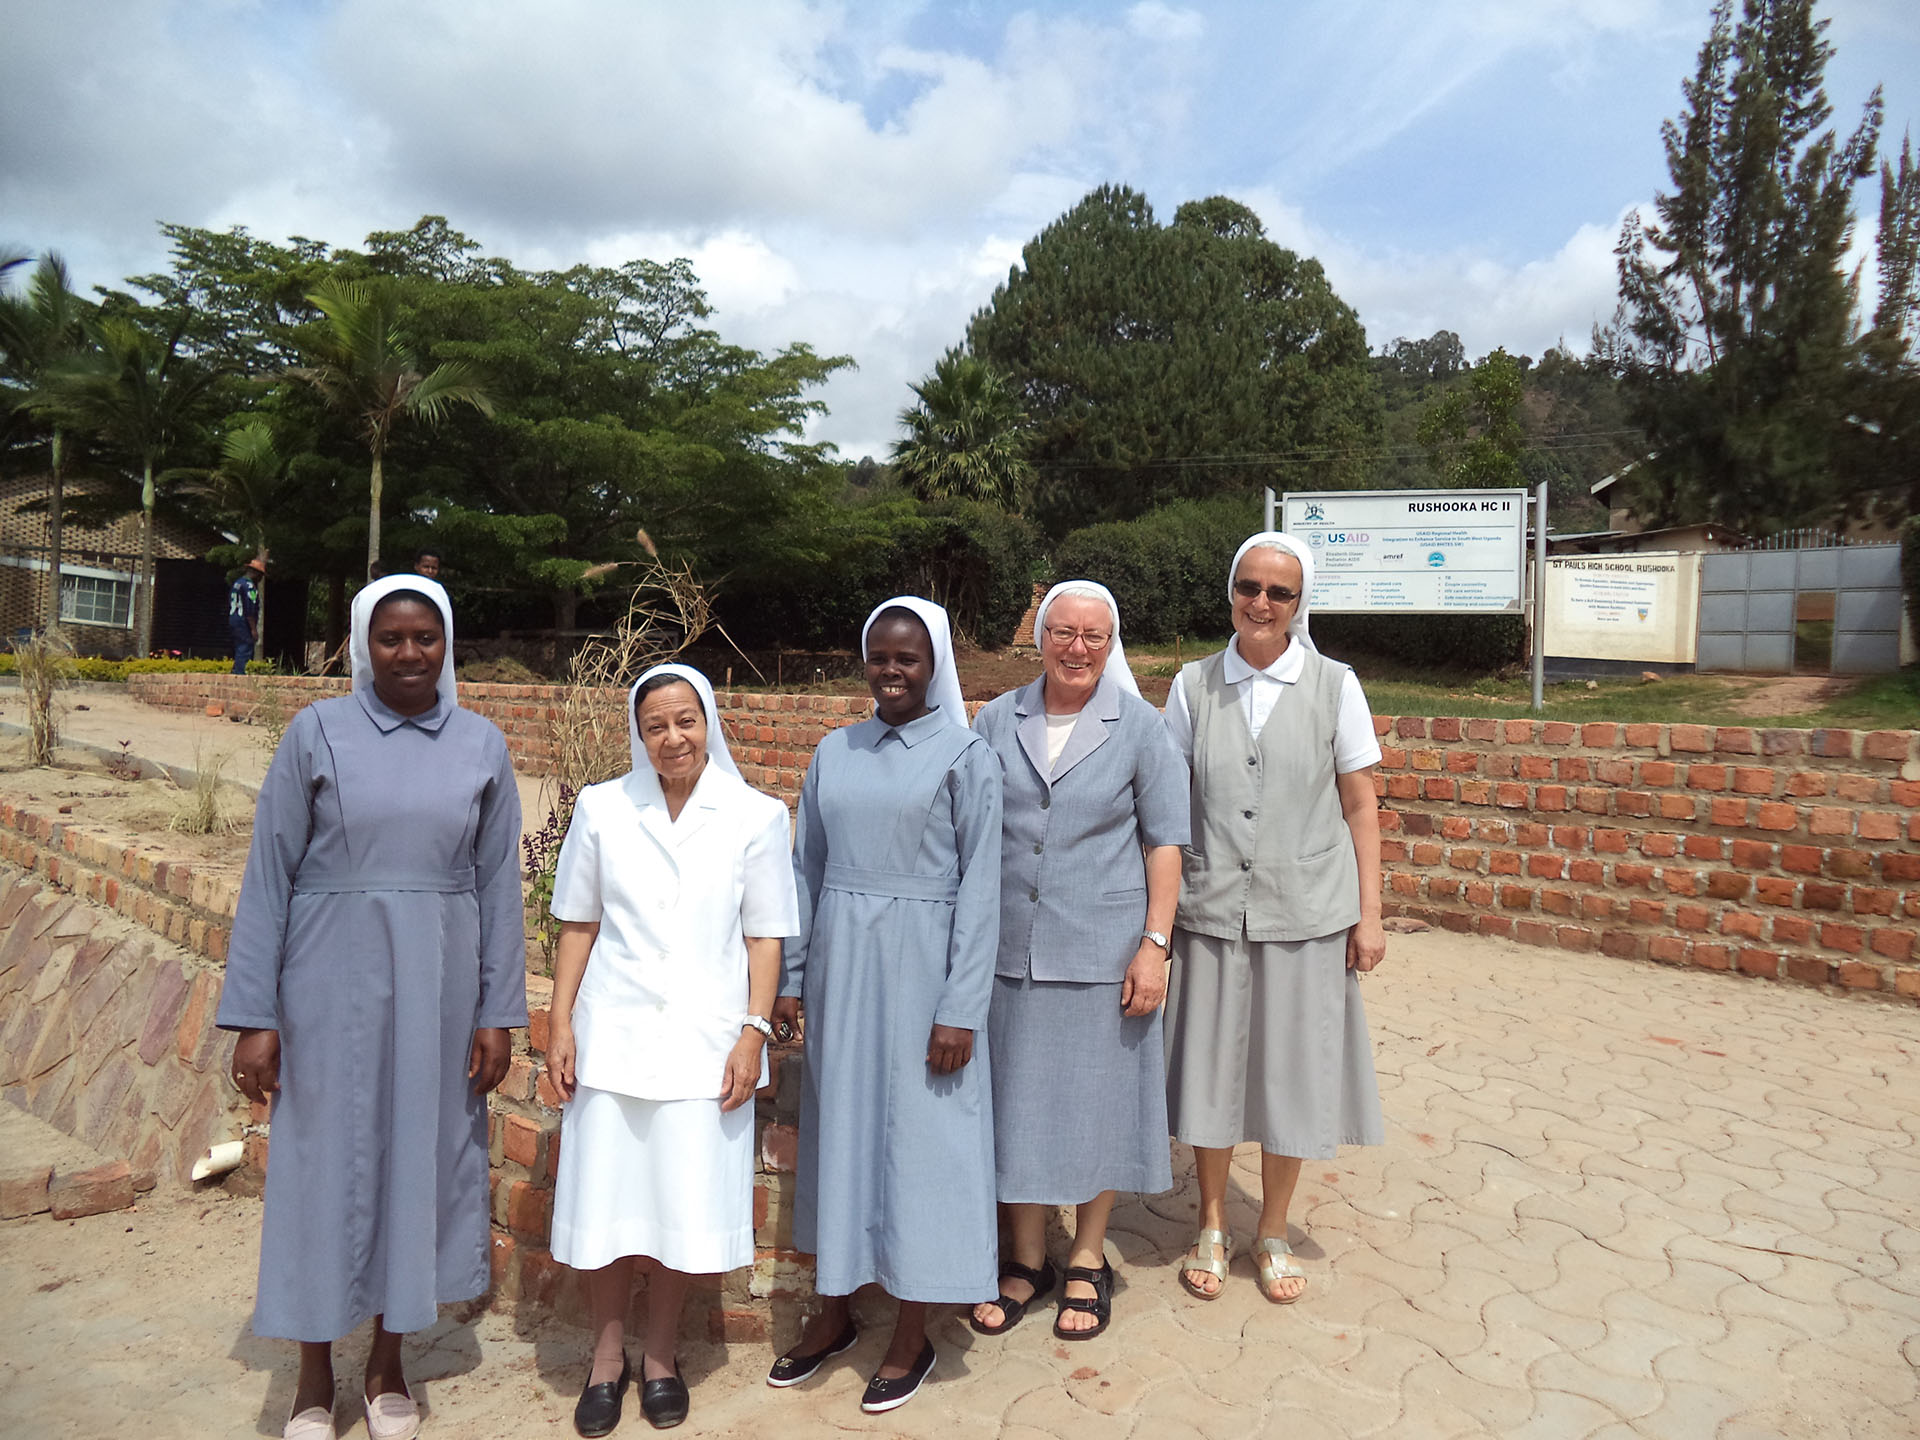 Mother Francisca Lechner Health Unit in Uganda, Caritas Pro Vitae Gradu Charitable Trust, Ariane Slinger